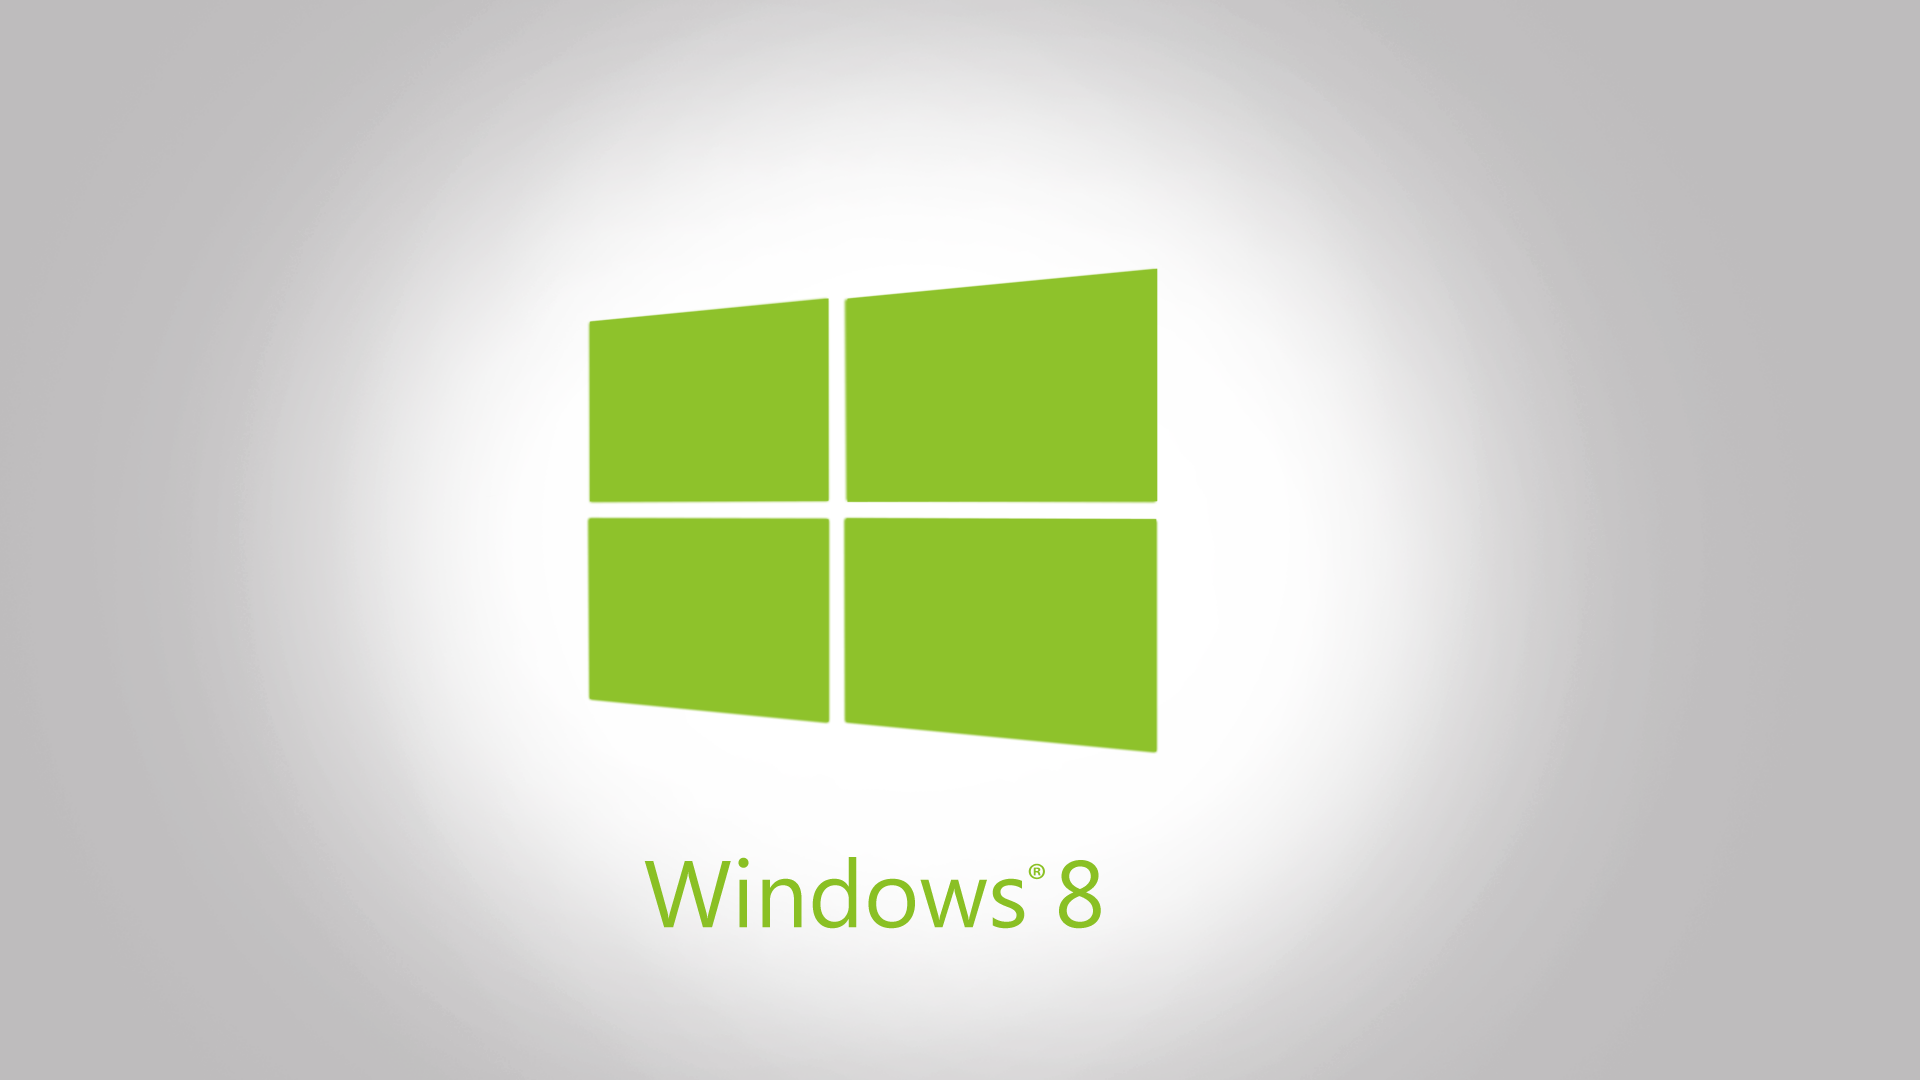 windows_8_green_by_silviu_eduard-d4q4nu1.png